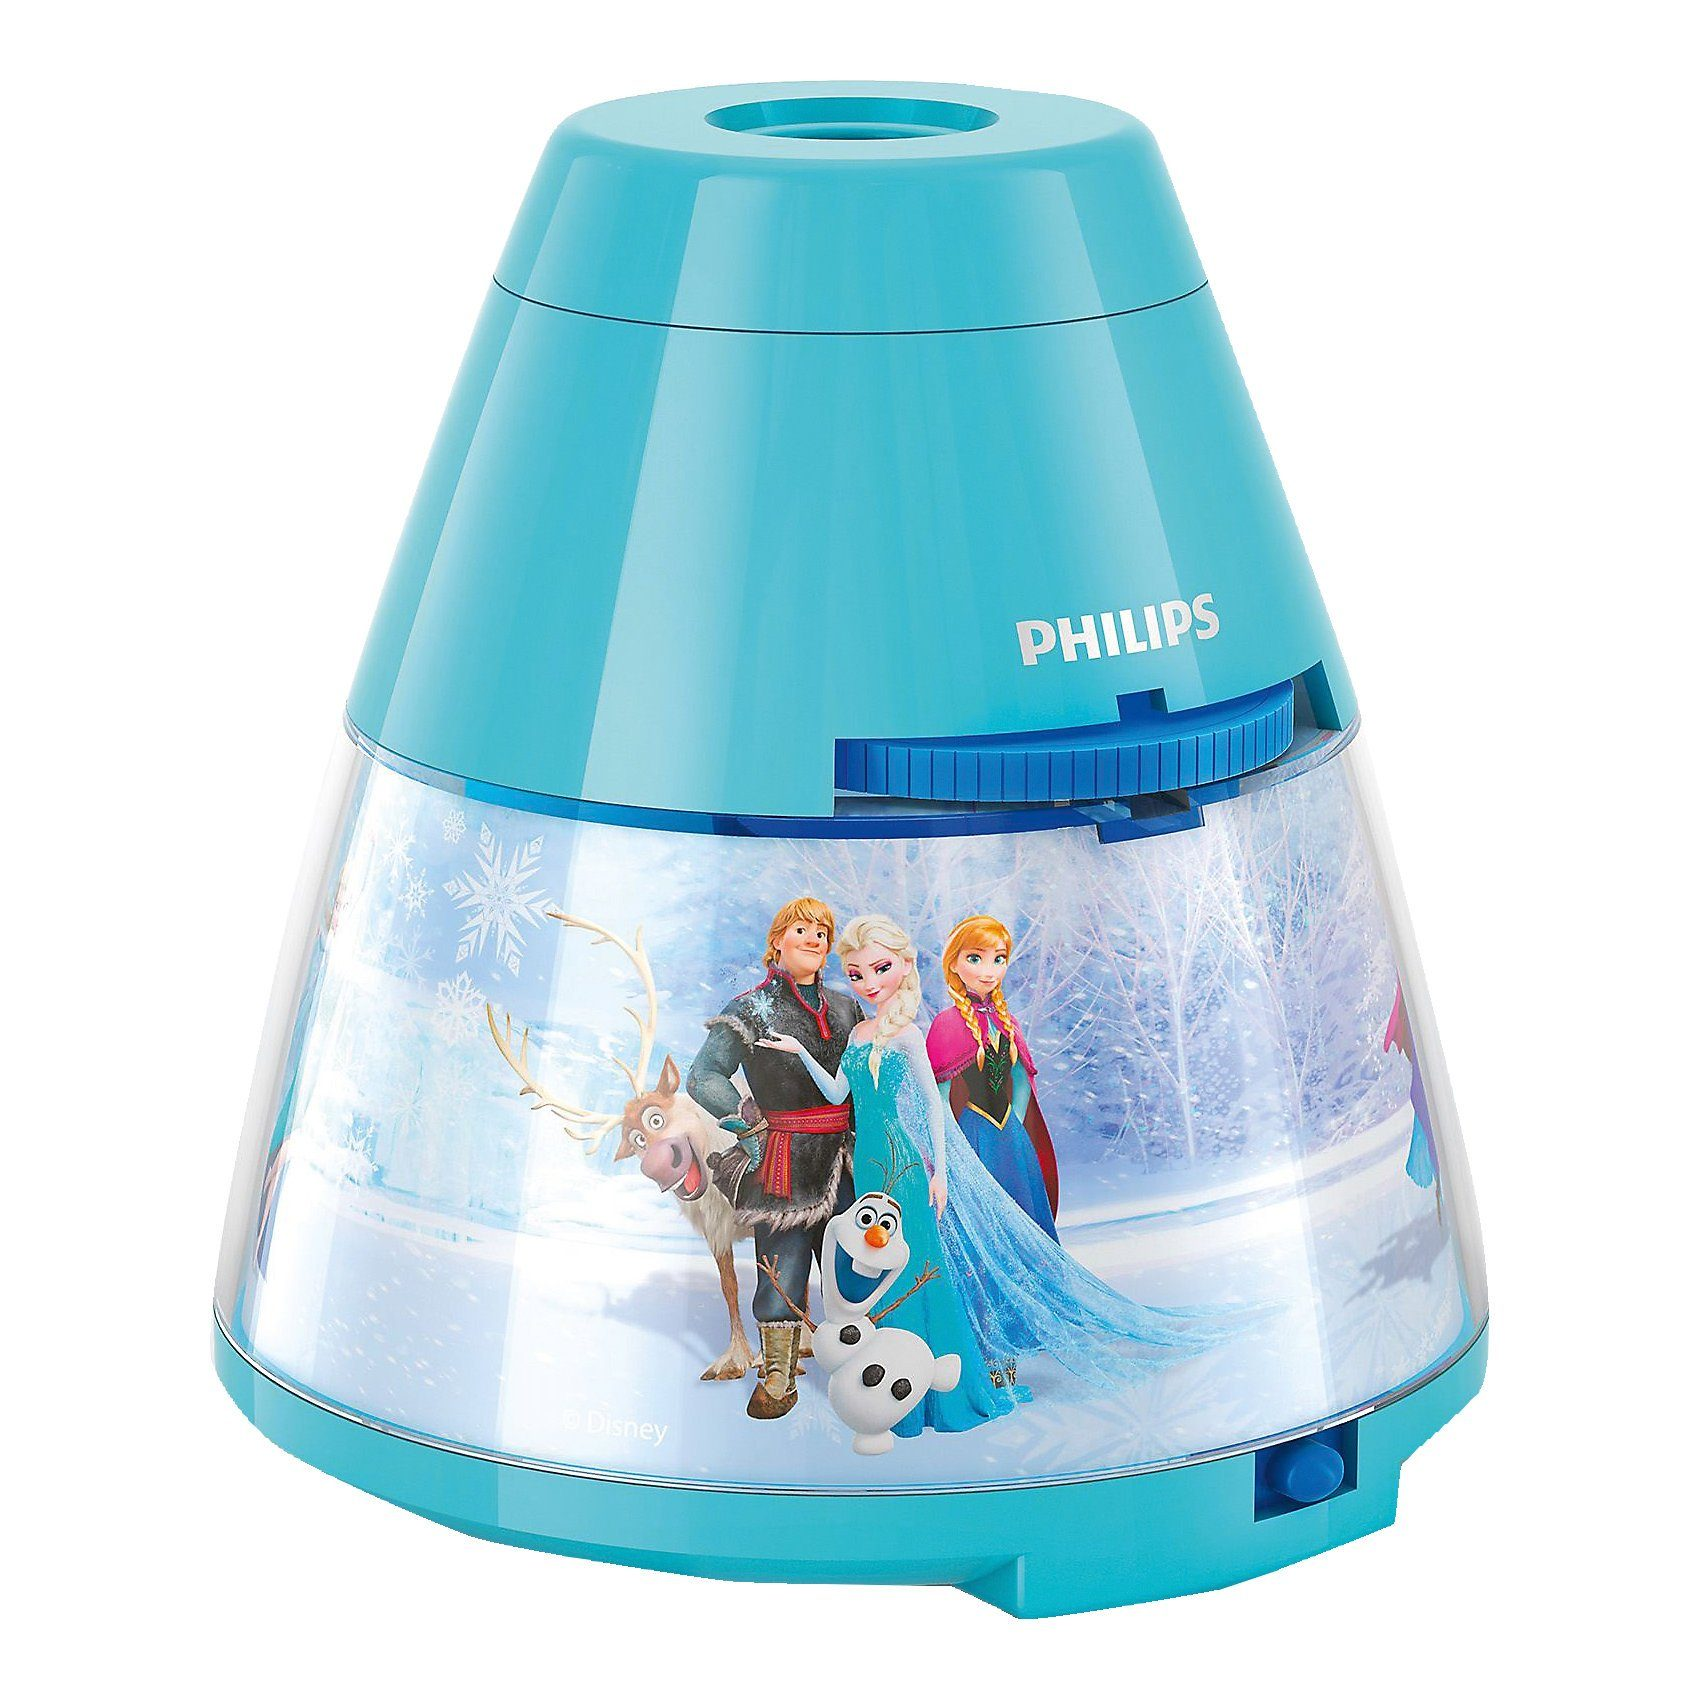 Philips Lighting Projektor Tischlampe, Die Eiskönigin, LED